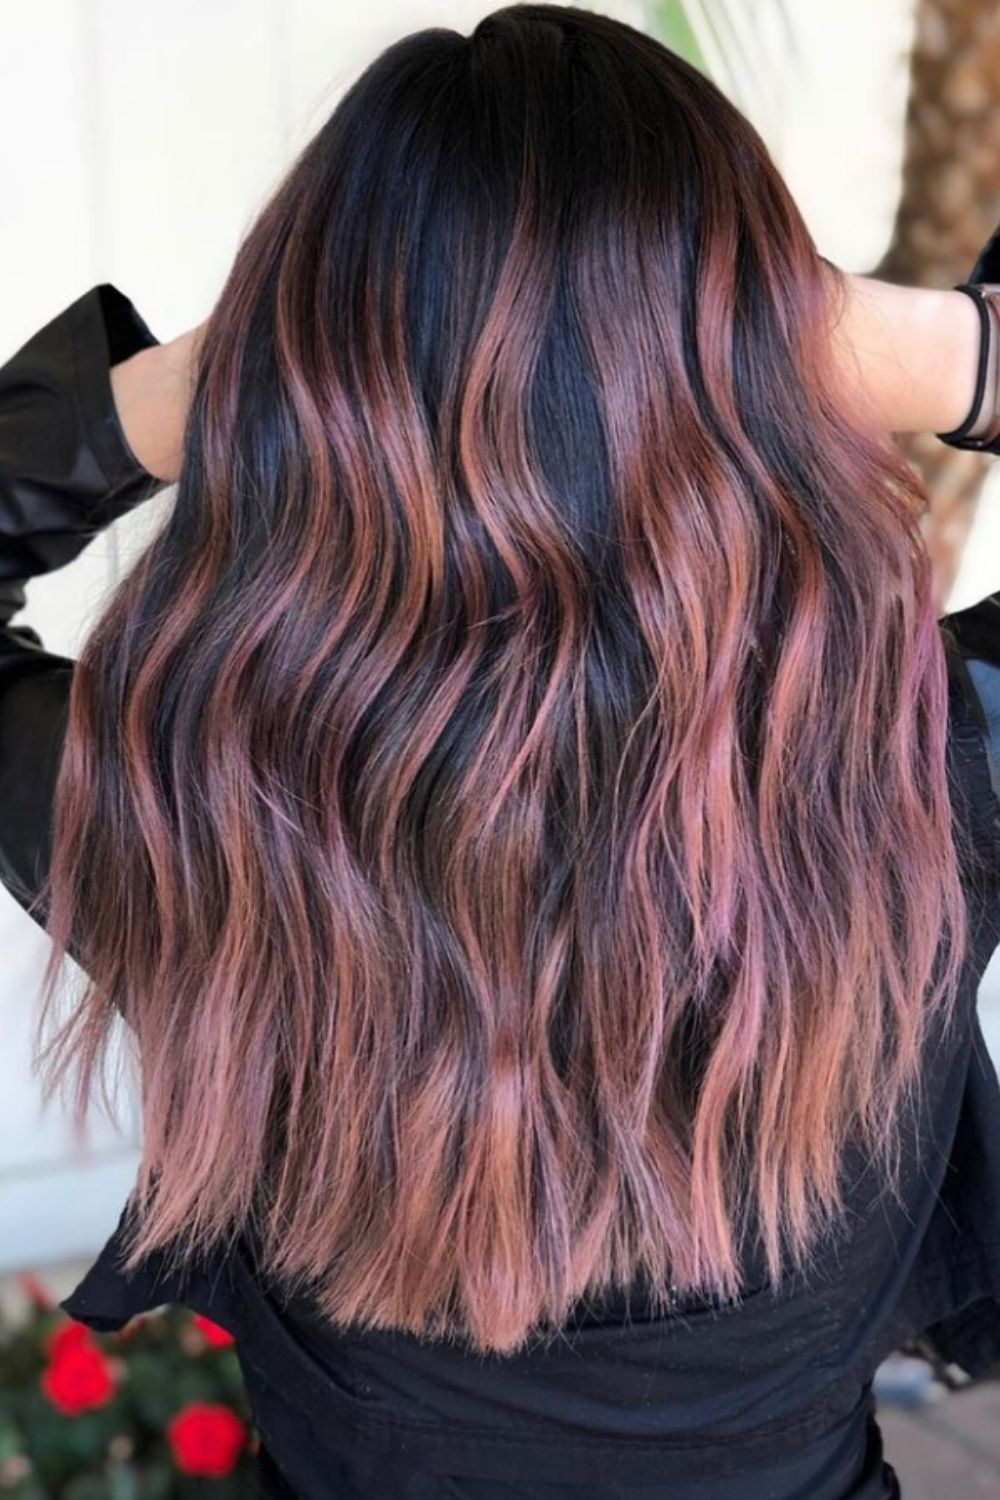 Redombrehair   Fabulous hair colors and hairstyles 2021